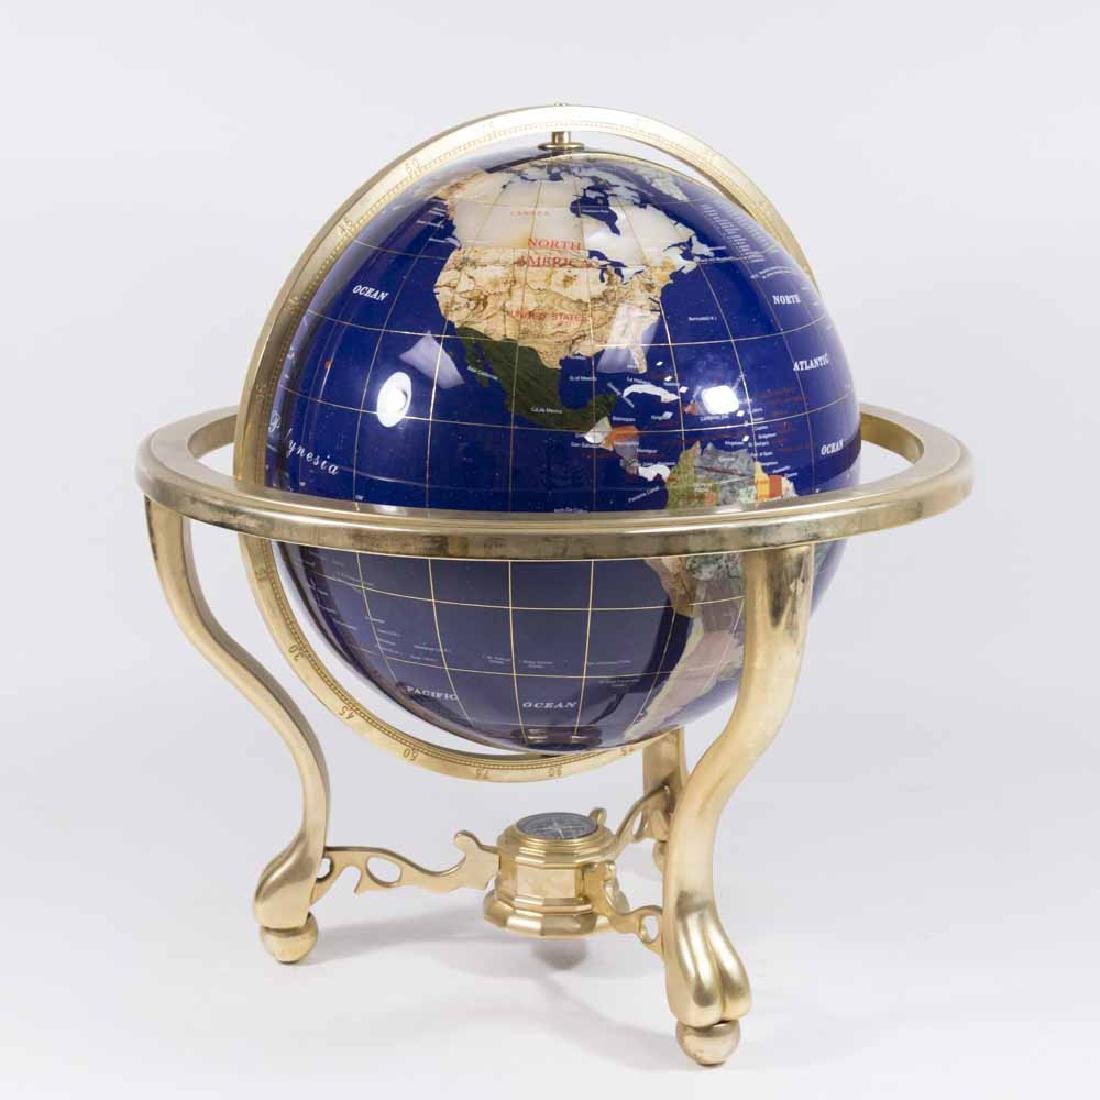 Cast Brass Enameled & Inlaid Stone Globe on Stand